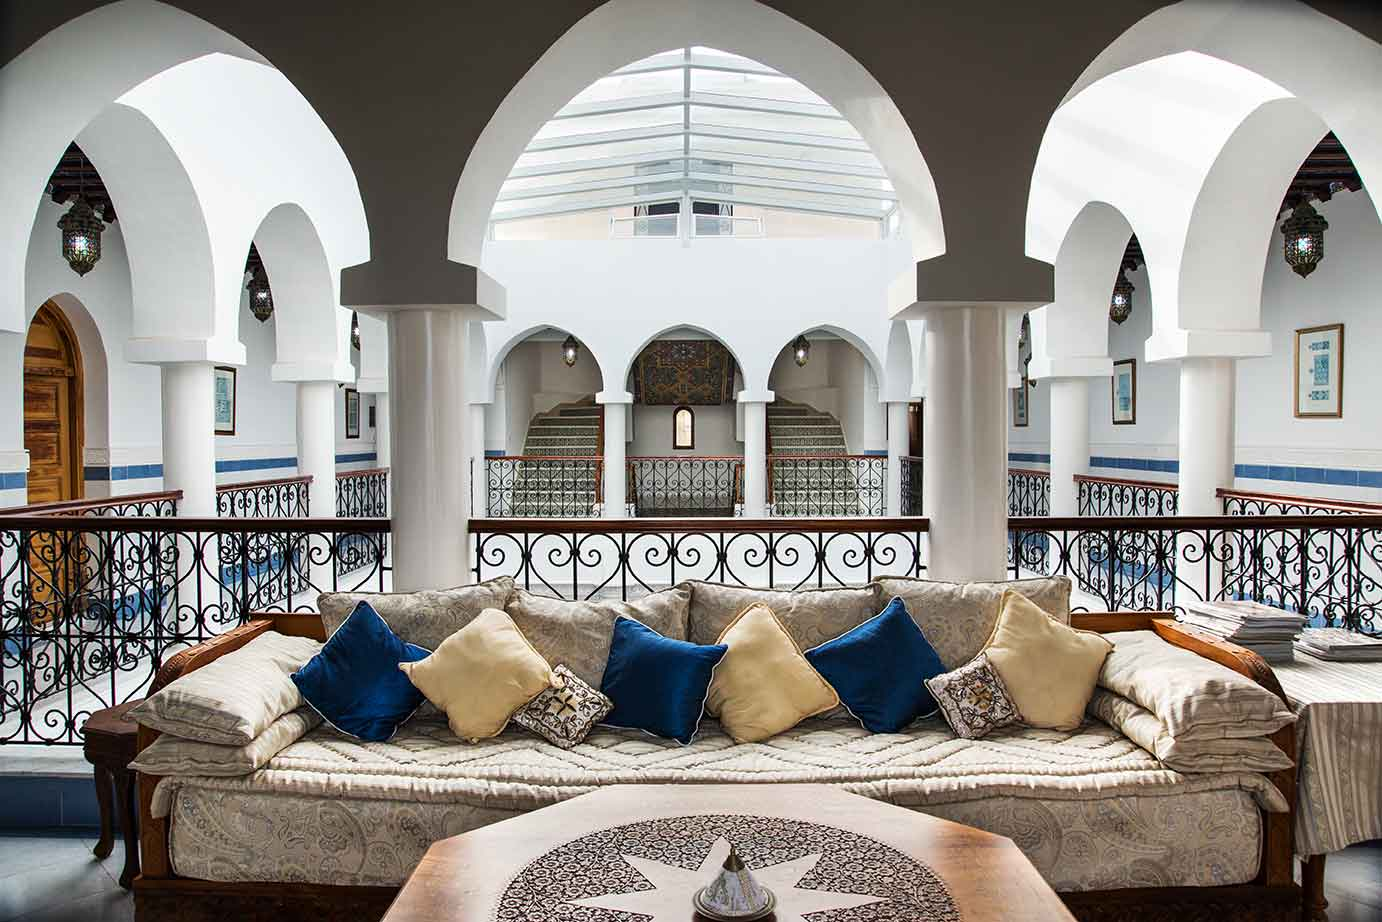 Villa Liza is a magnificent Moorish-inspired <em>riad</em> overlooking the bay of Tangier in the White City of Morocco.